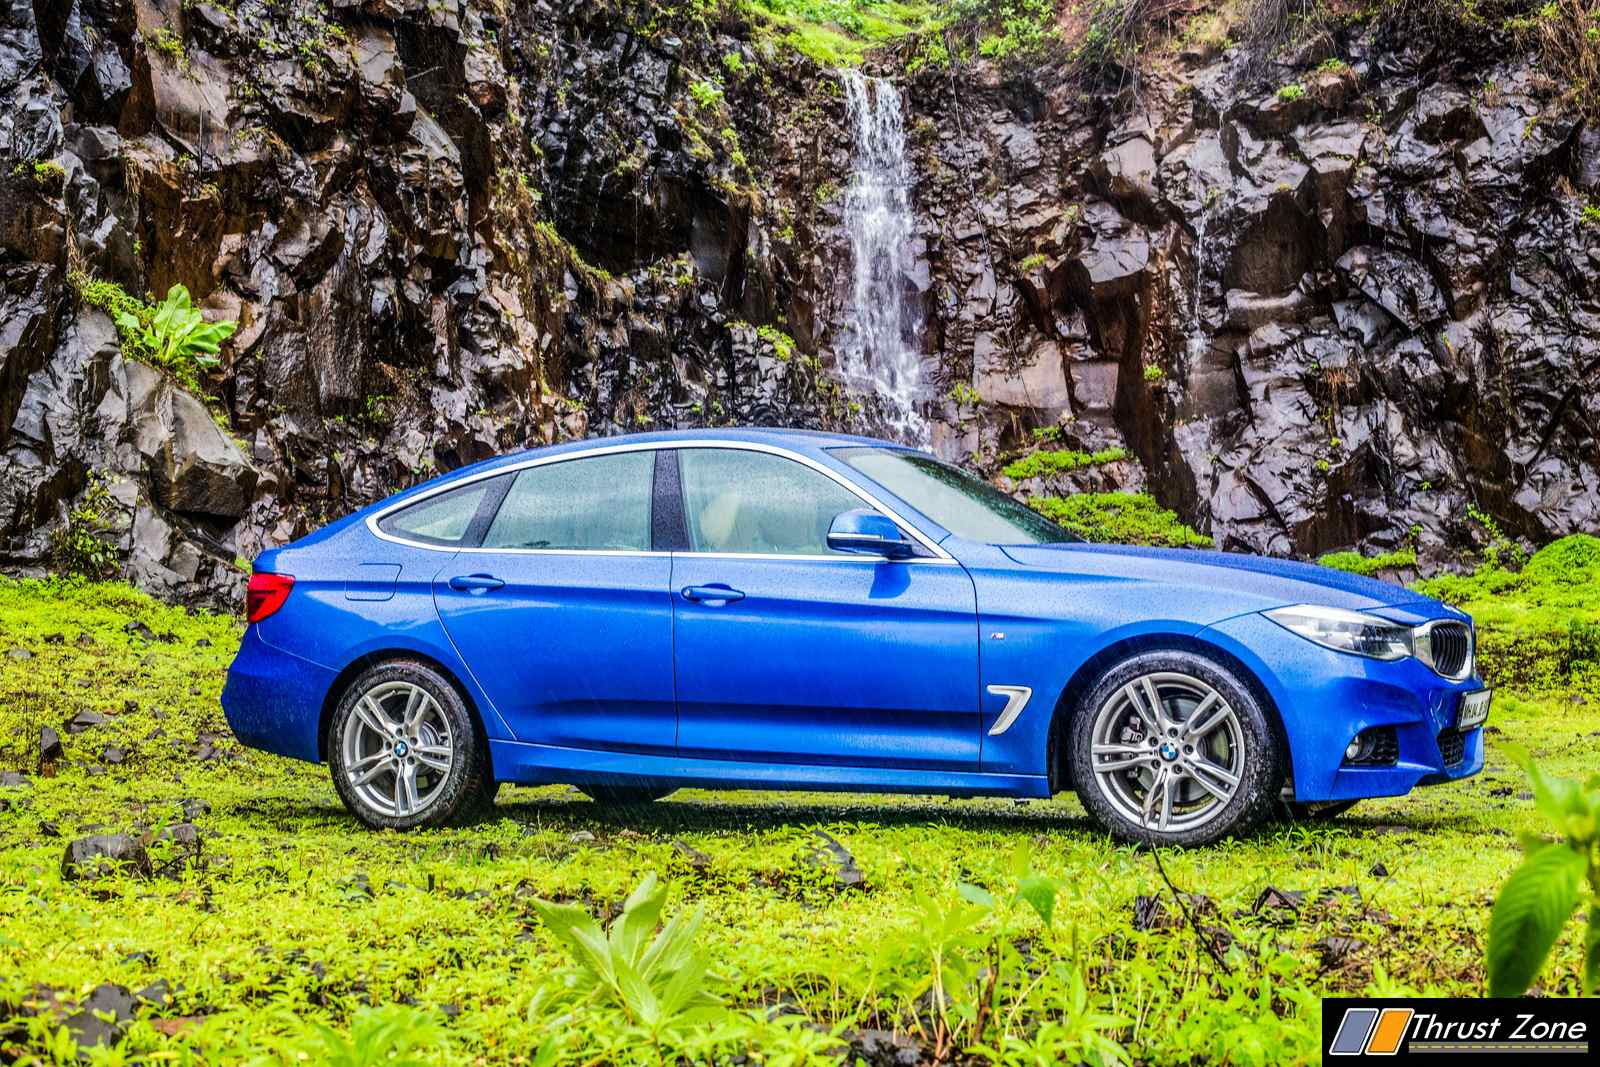 https://www.thrustzone.com/wp-content/uploads/2018/08/BMW-330i-GT-India-Review-13.jpg